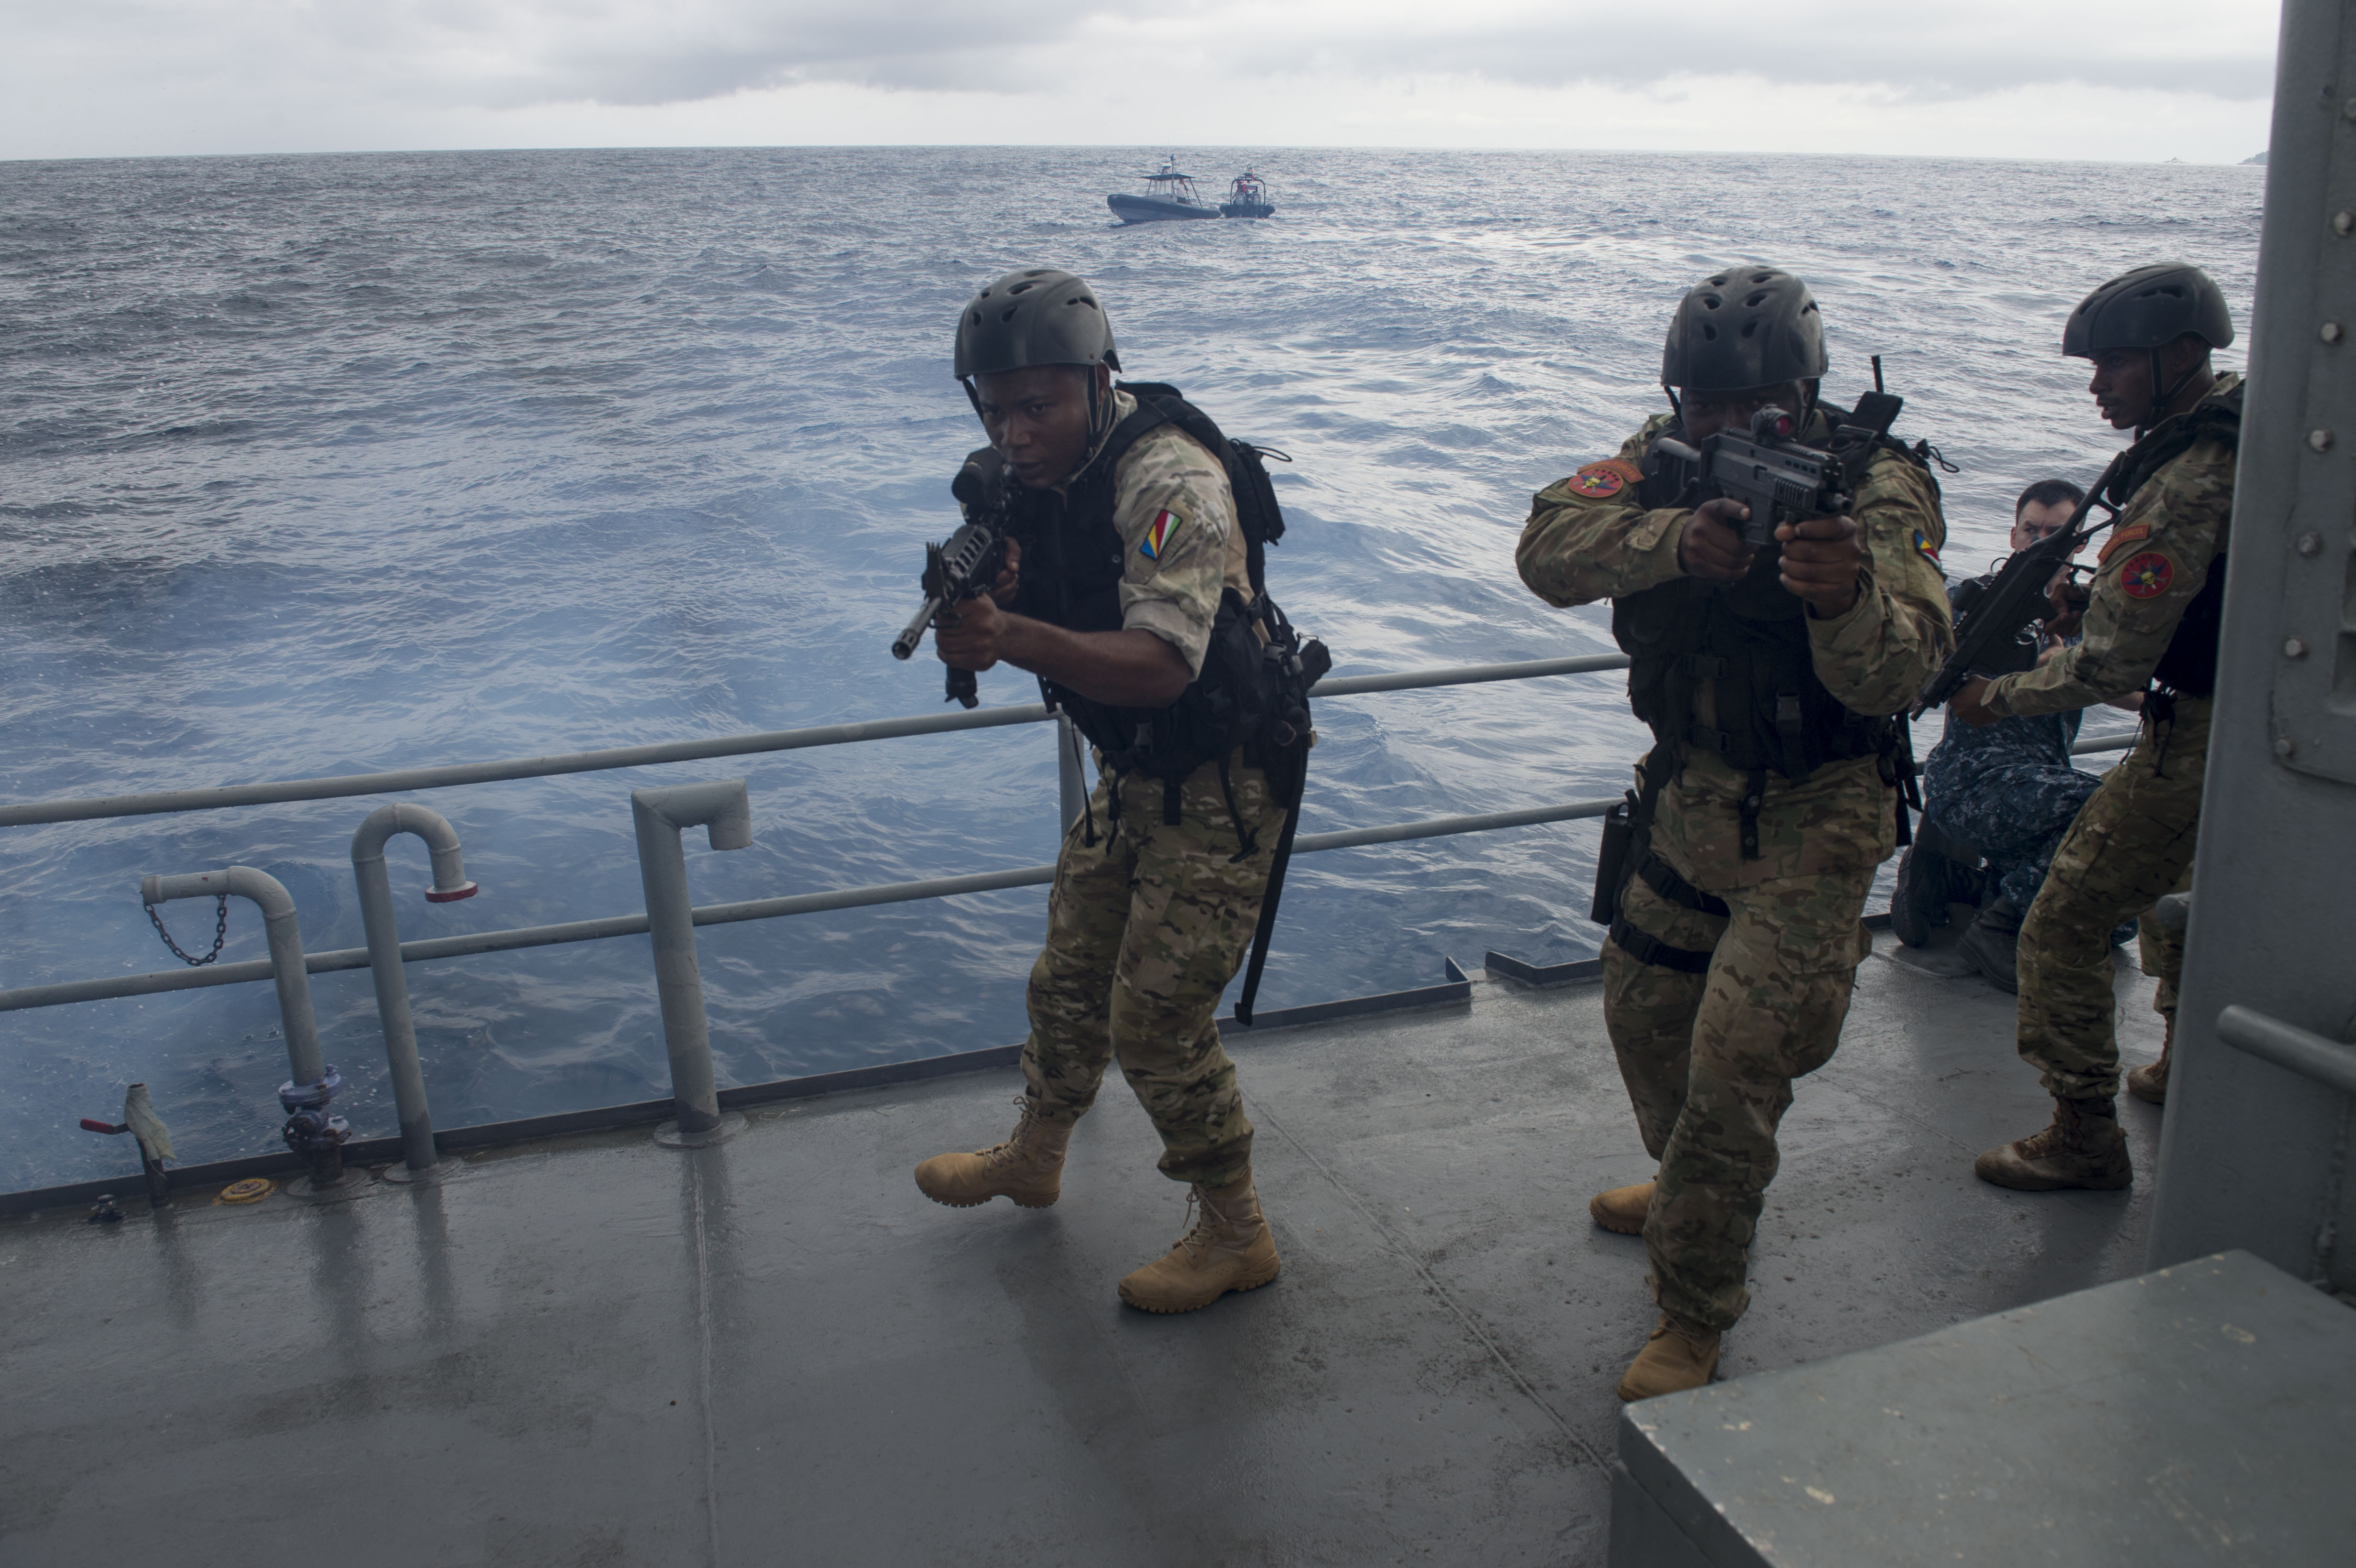 Maritime forces from Seychelles conduct a visit, board, search and seizure drill on a Seychellois patrol boat during exercise Cutlass Express 2016 on Feb 2. US Navy photo.